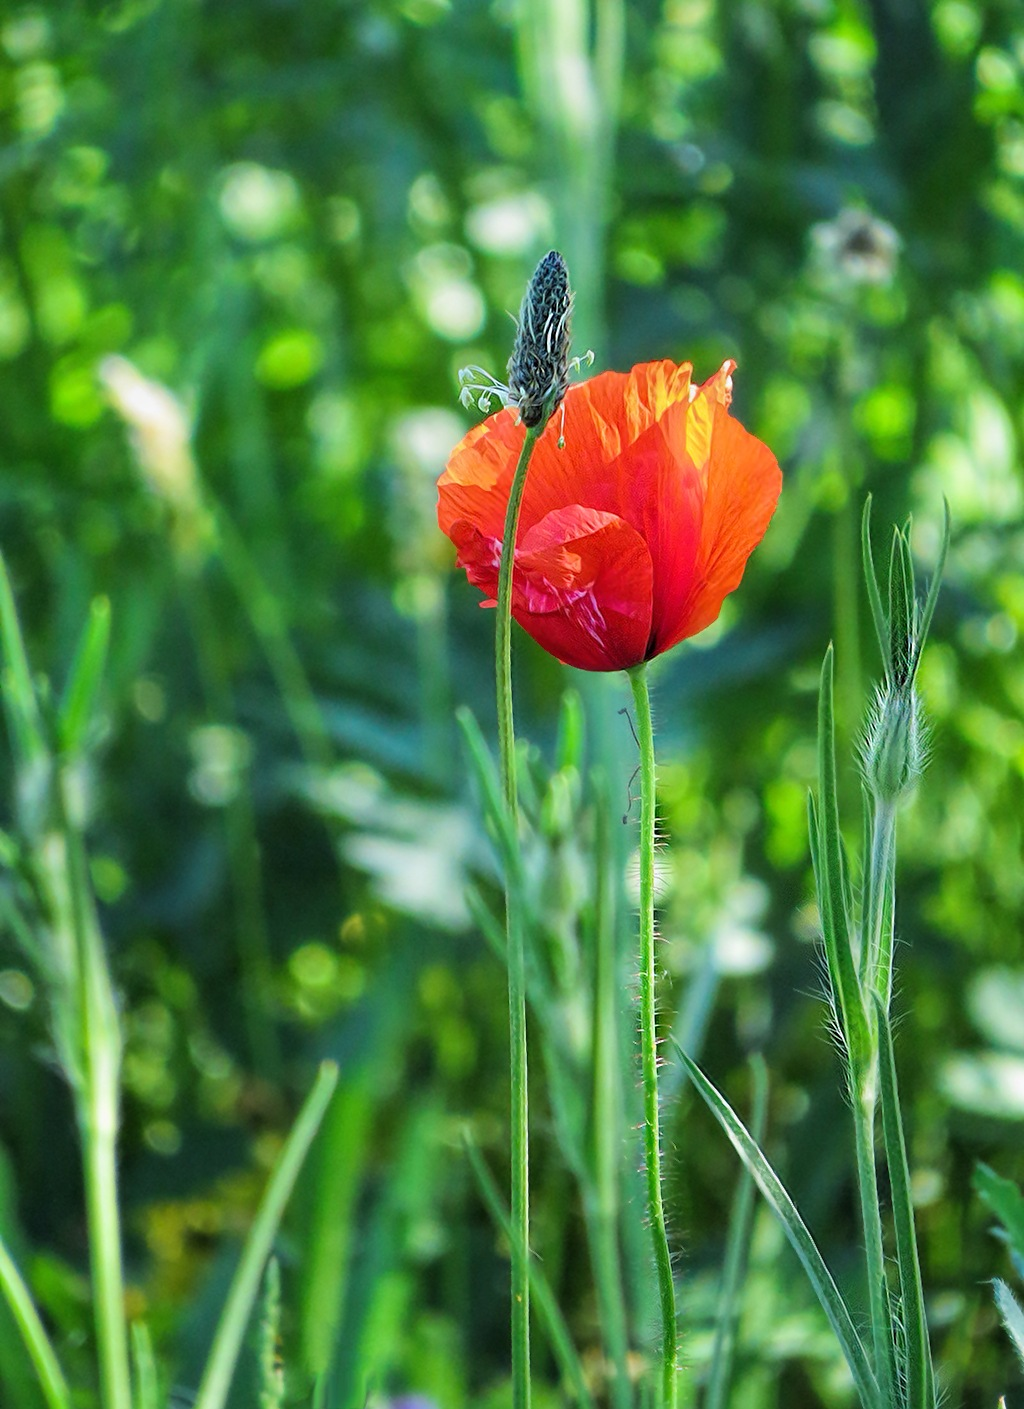 Poppy by susanne.m.andersson.92